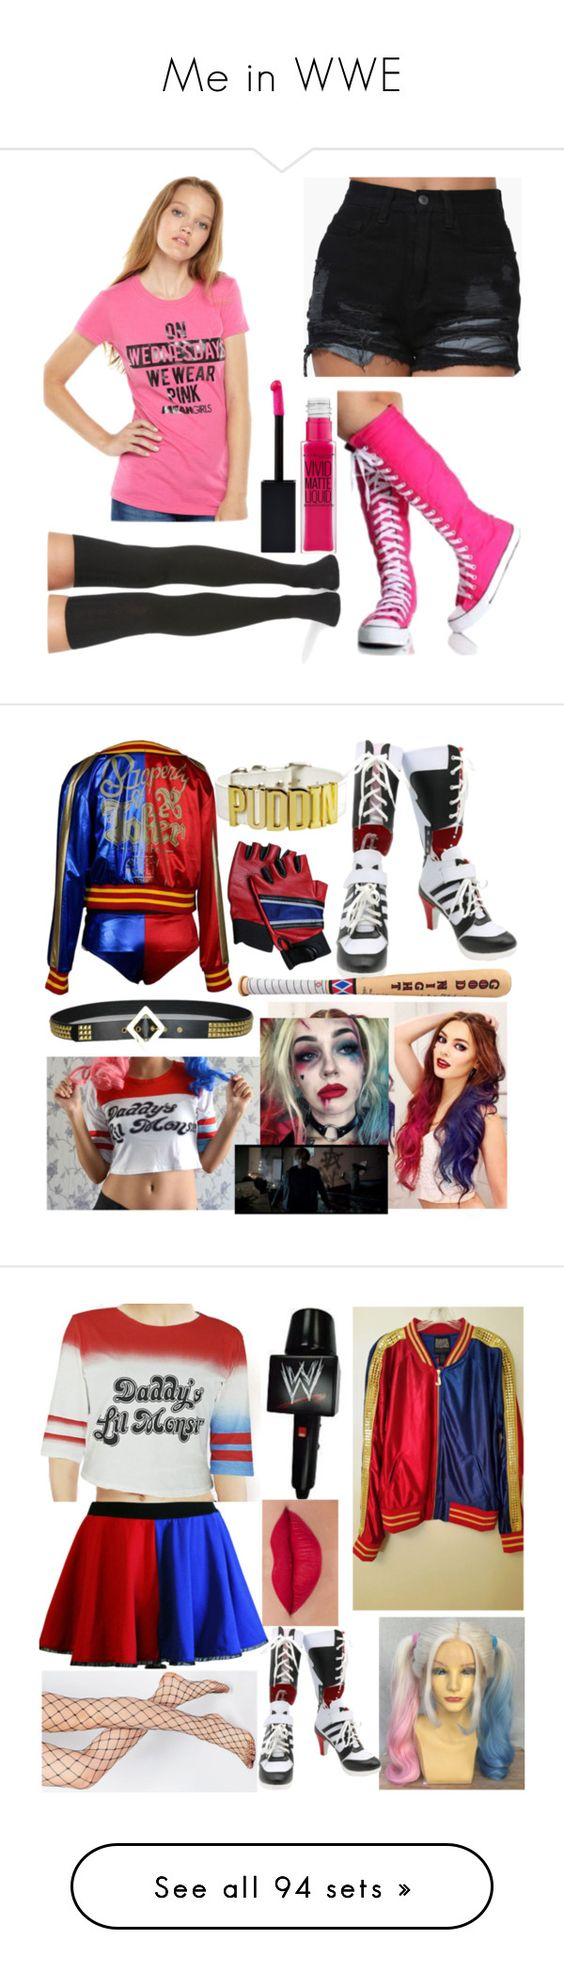 """""""Me in WWE"""" by amesqueda ❤ liked on Polyvore featuring Converse, Peony & Moss, Maybelline, Miss Me, Swat, ASOS, WWE, Boohoo, Preen and Durango"""